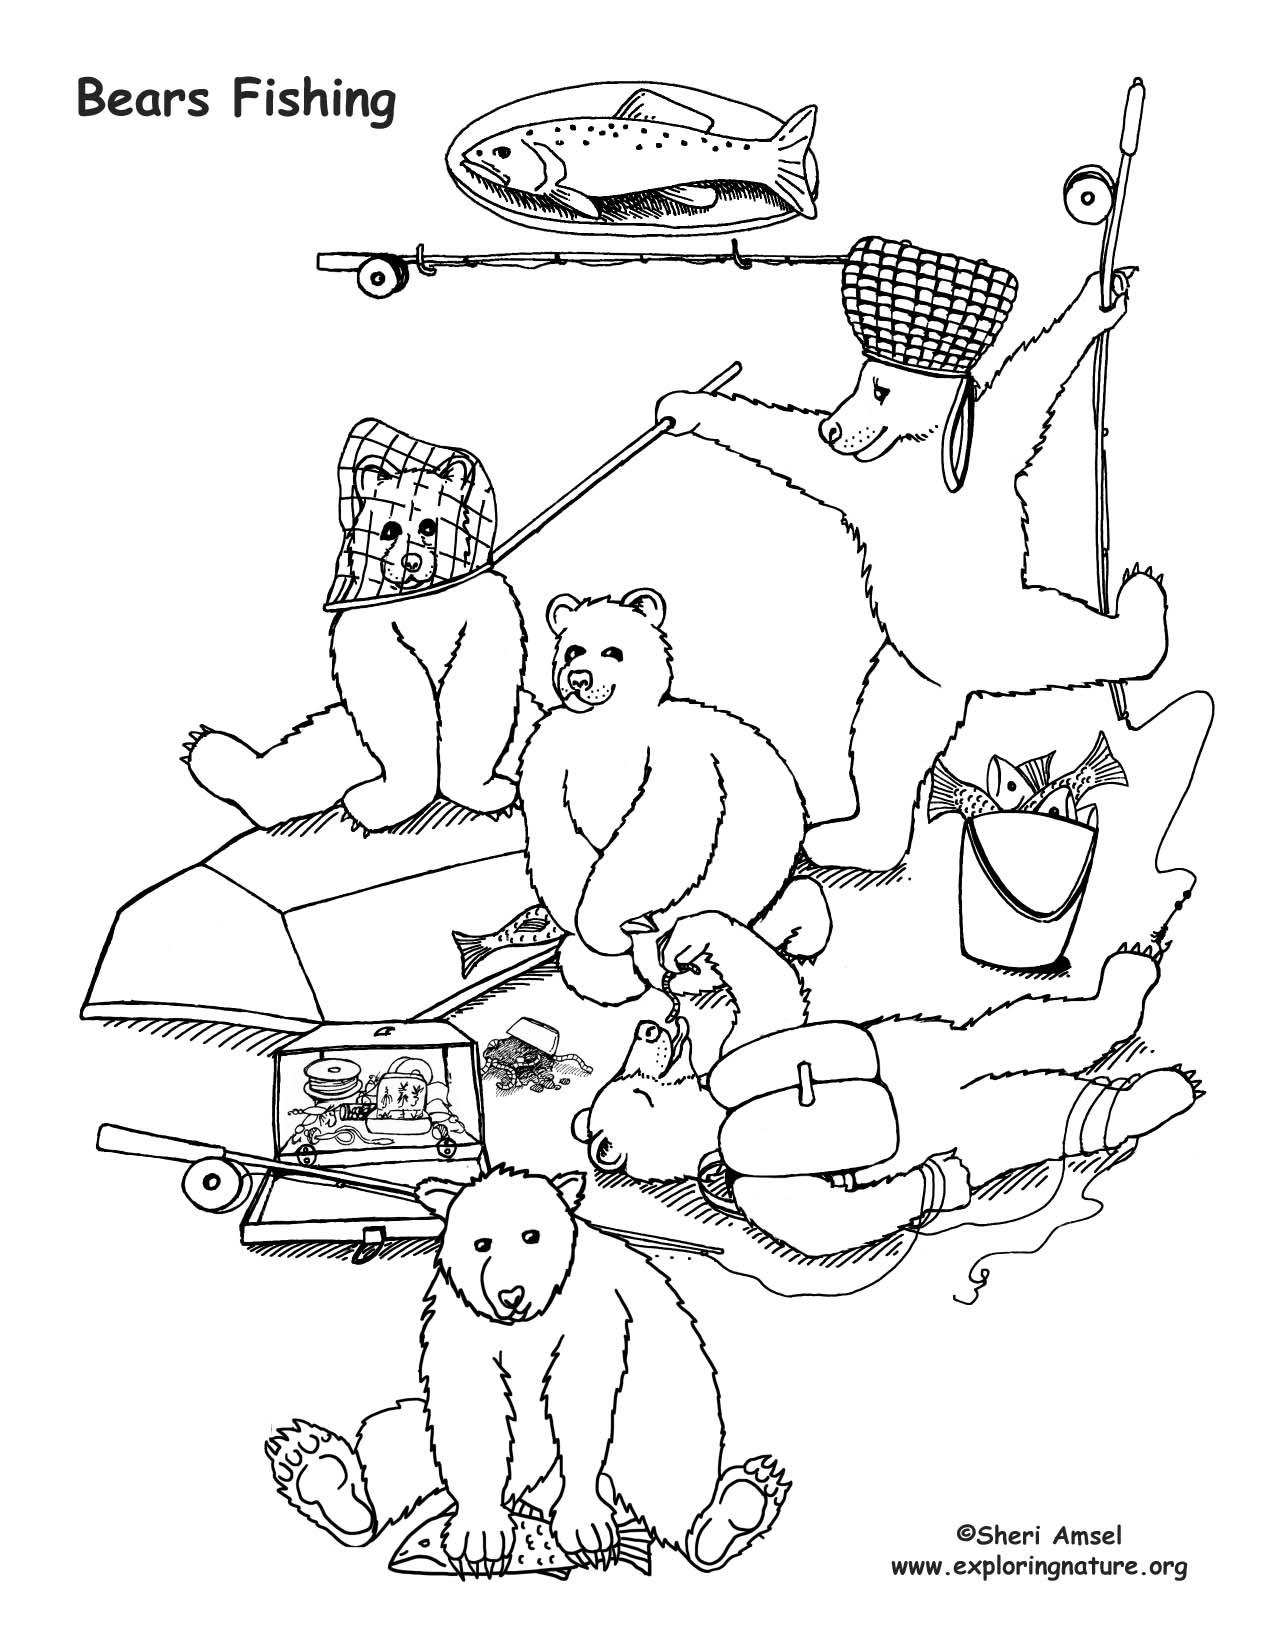 Bears Fishing Coloring Page